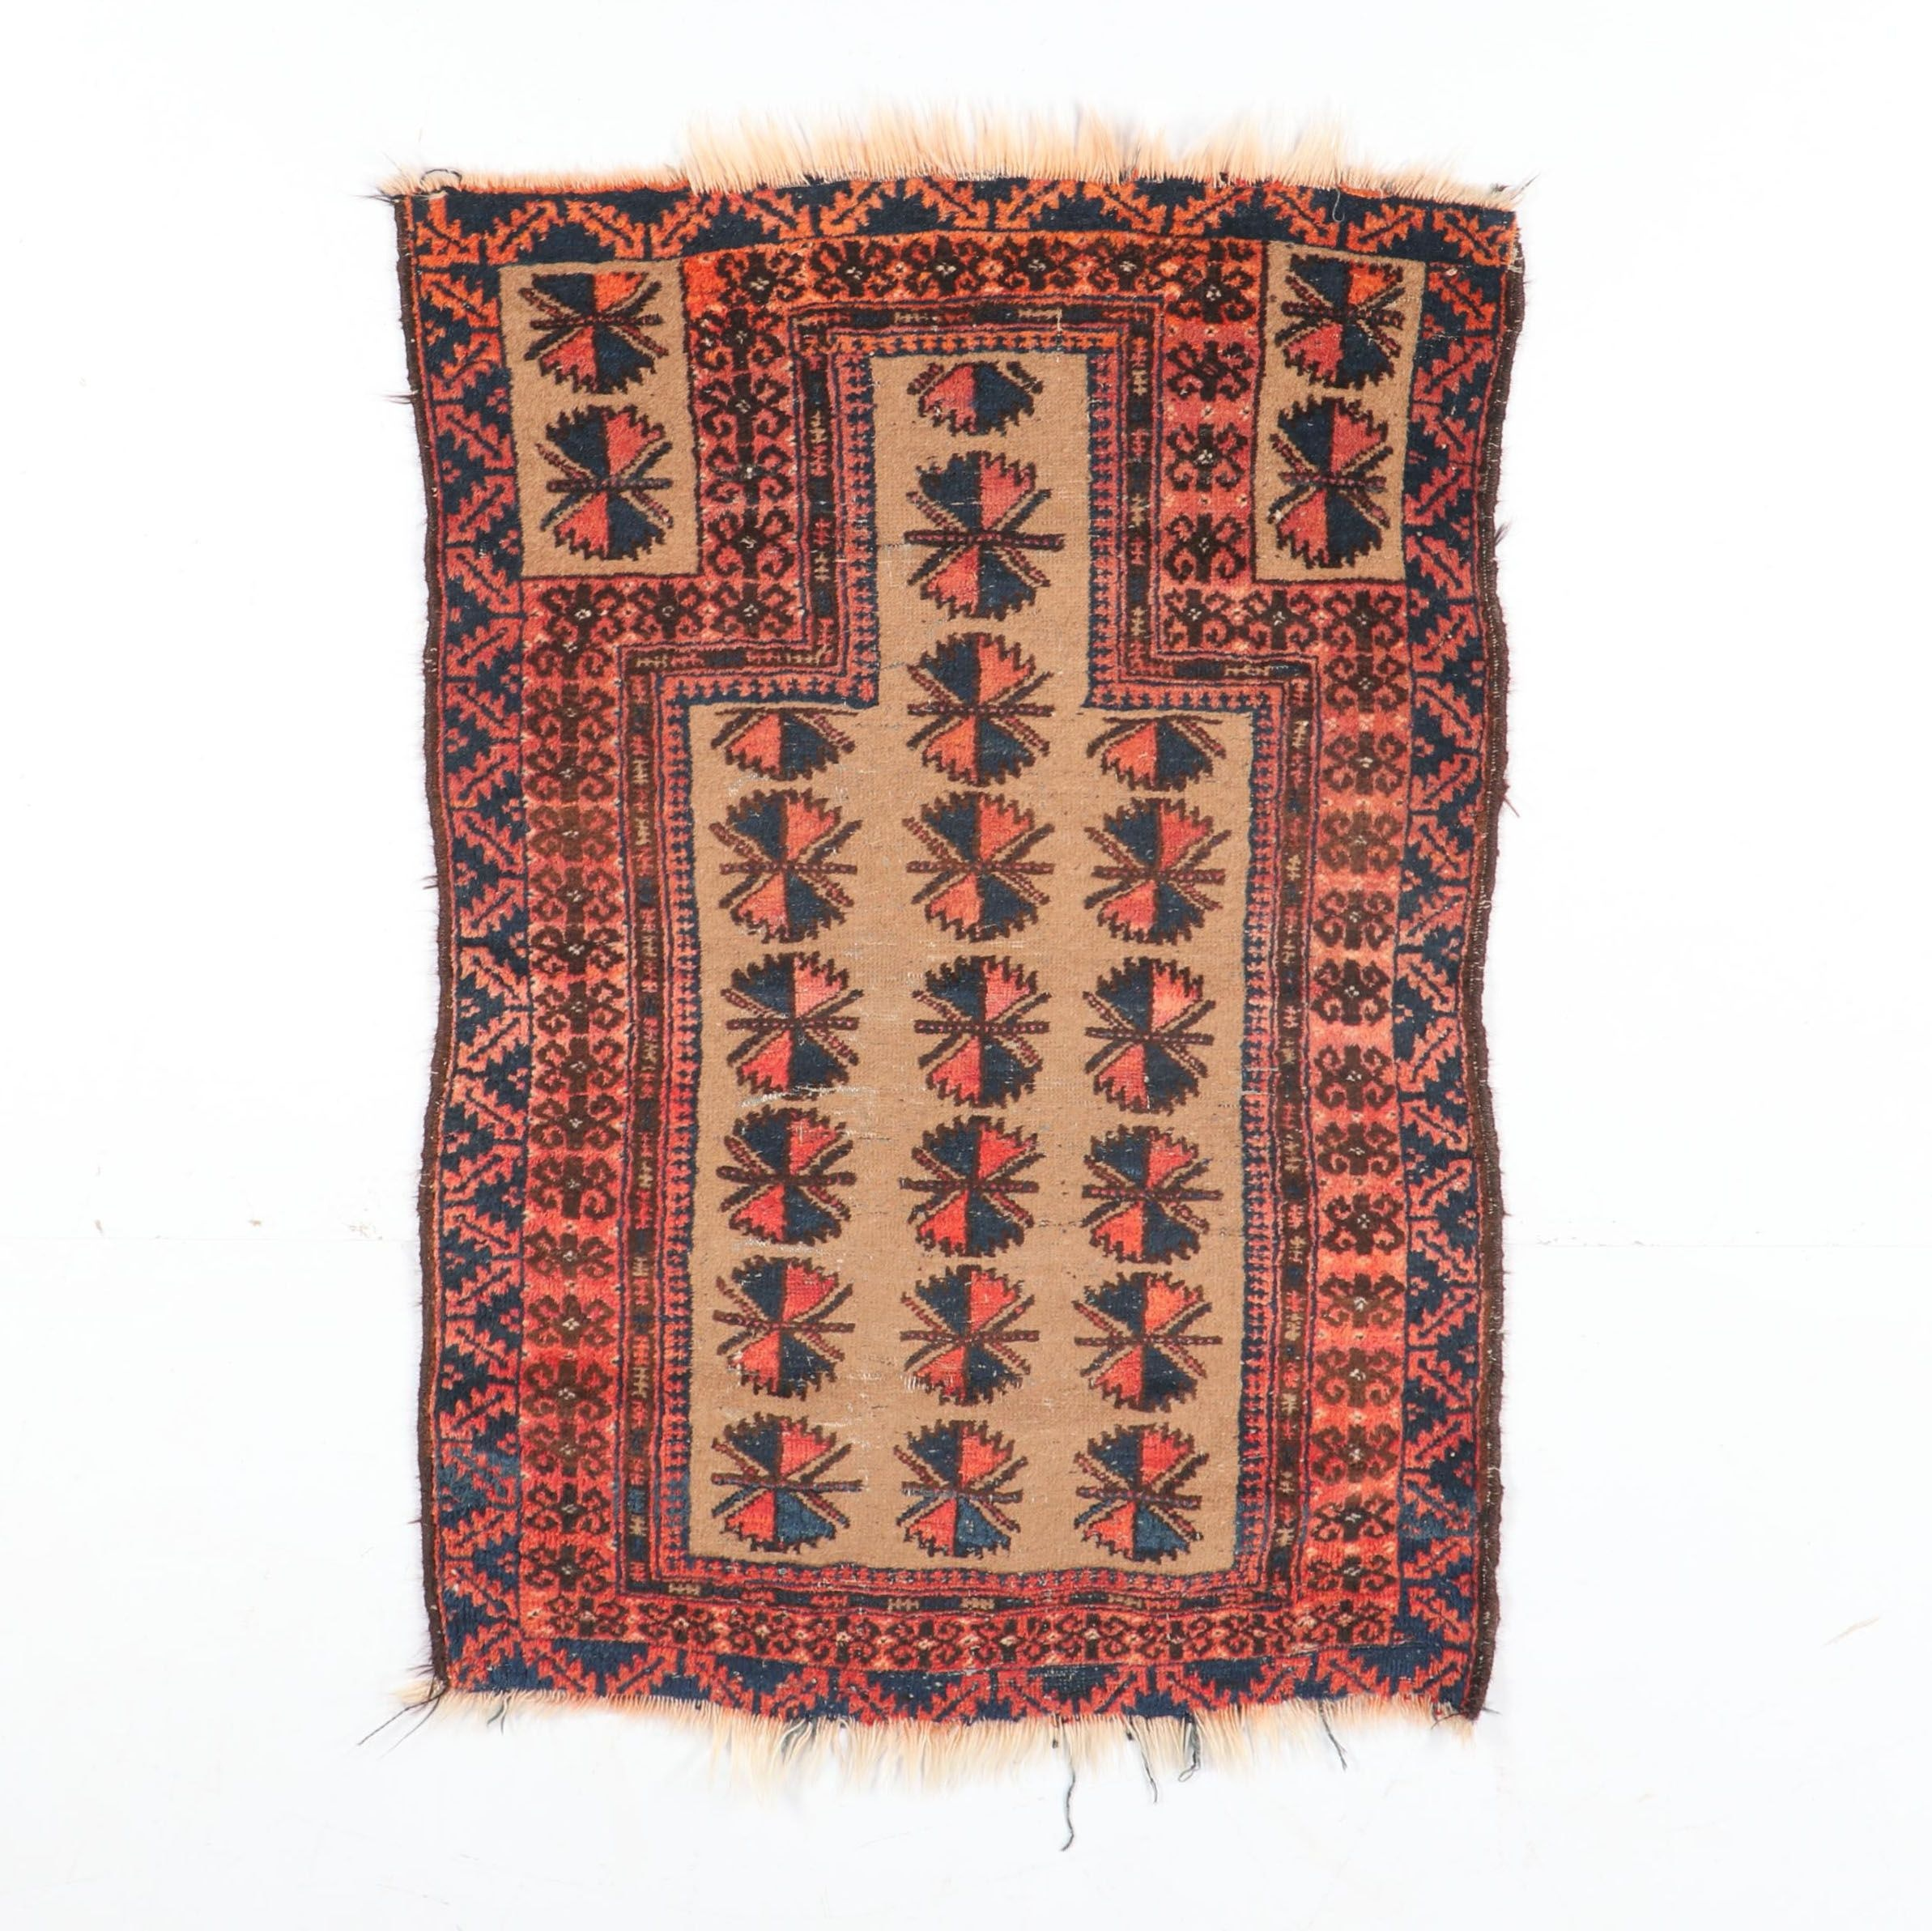 Hand-Knotted Baluch Prayer Rug